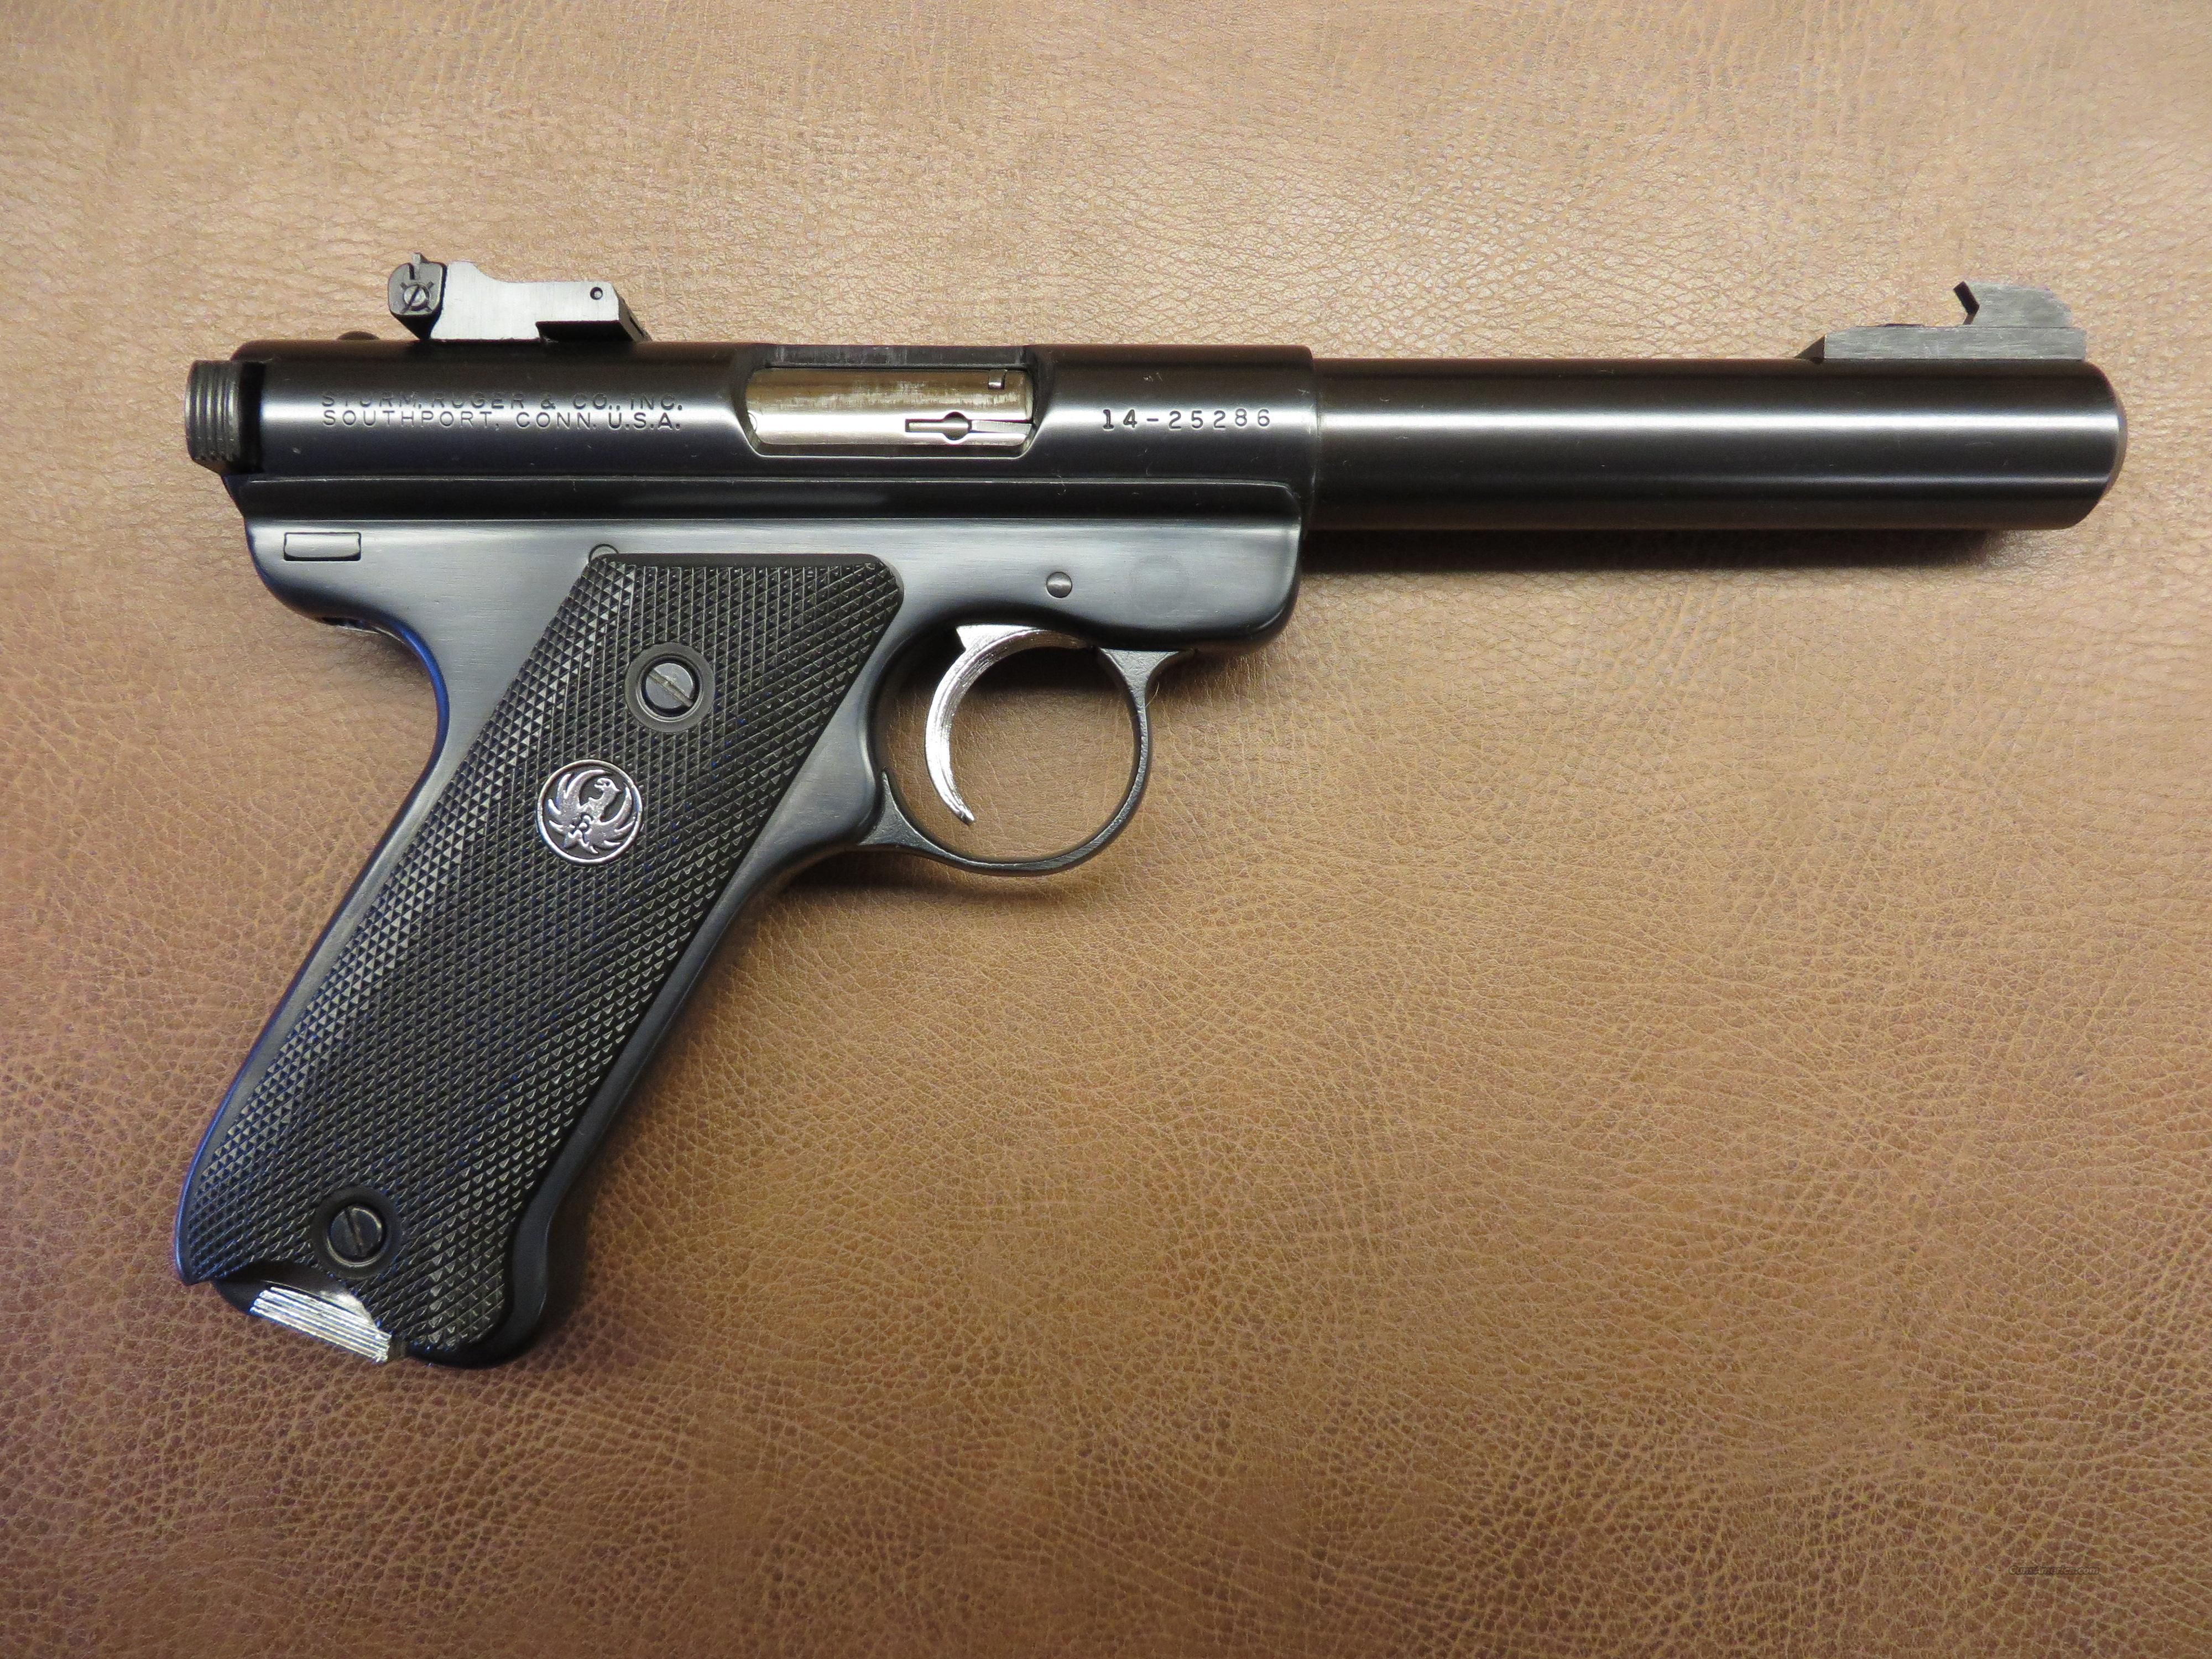 14 22 Long Serial Numbers Pistol Rifle Cal Automatic 88896 Ruger